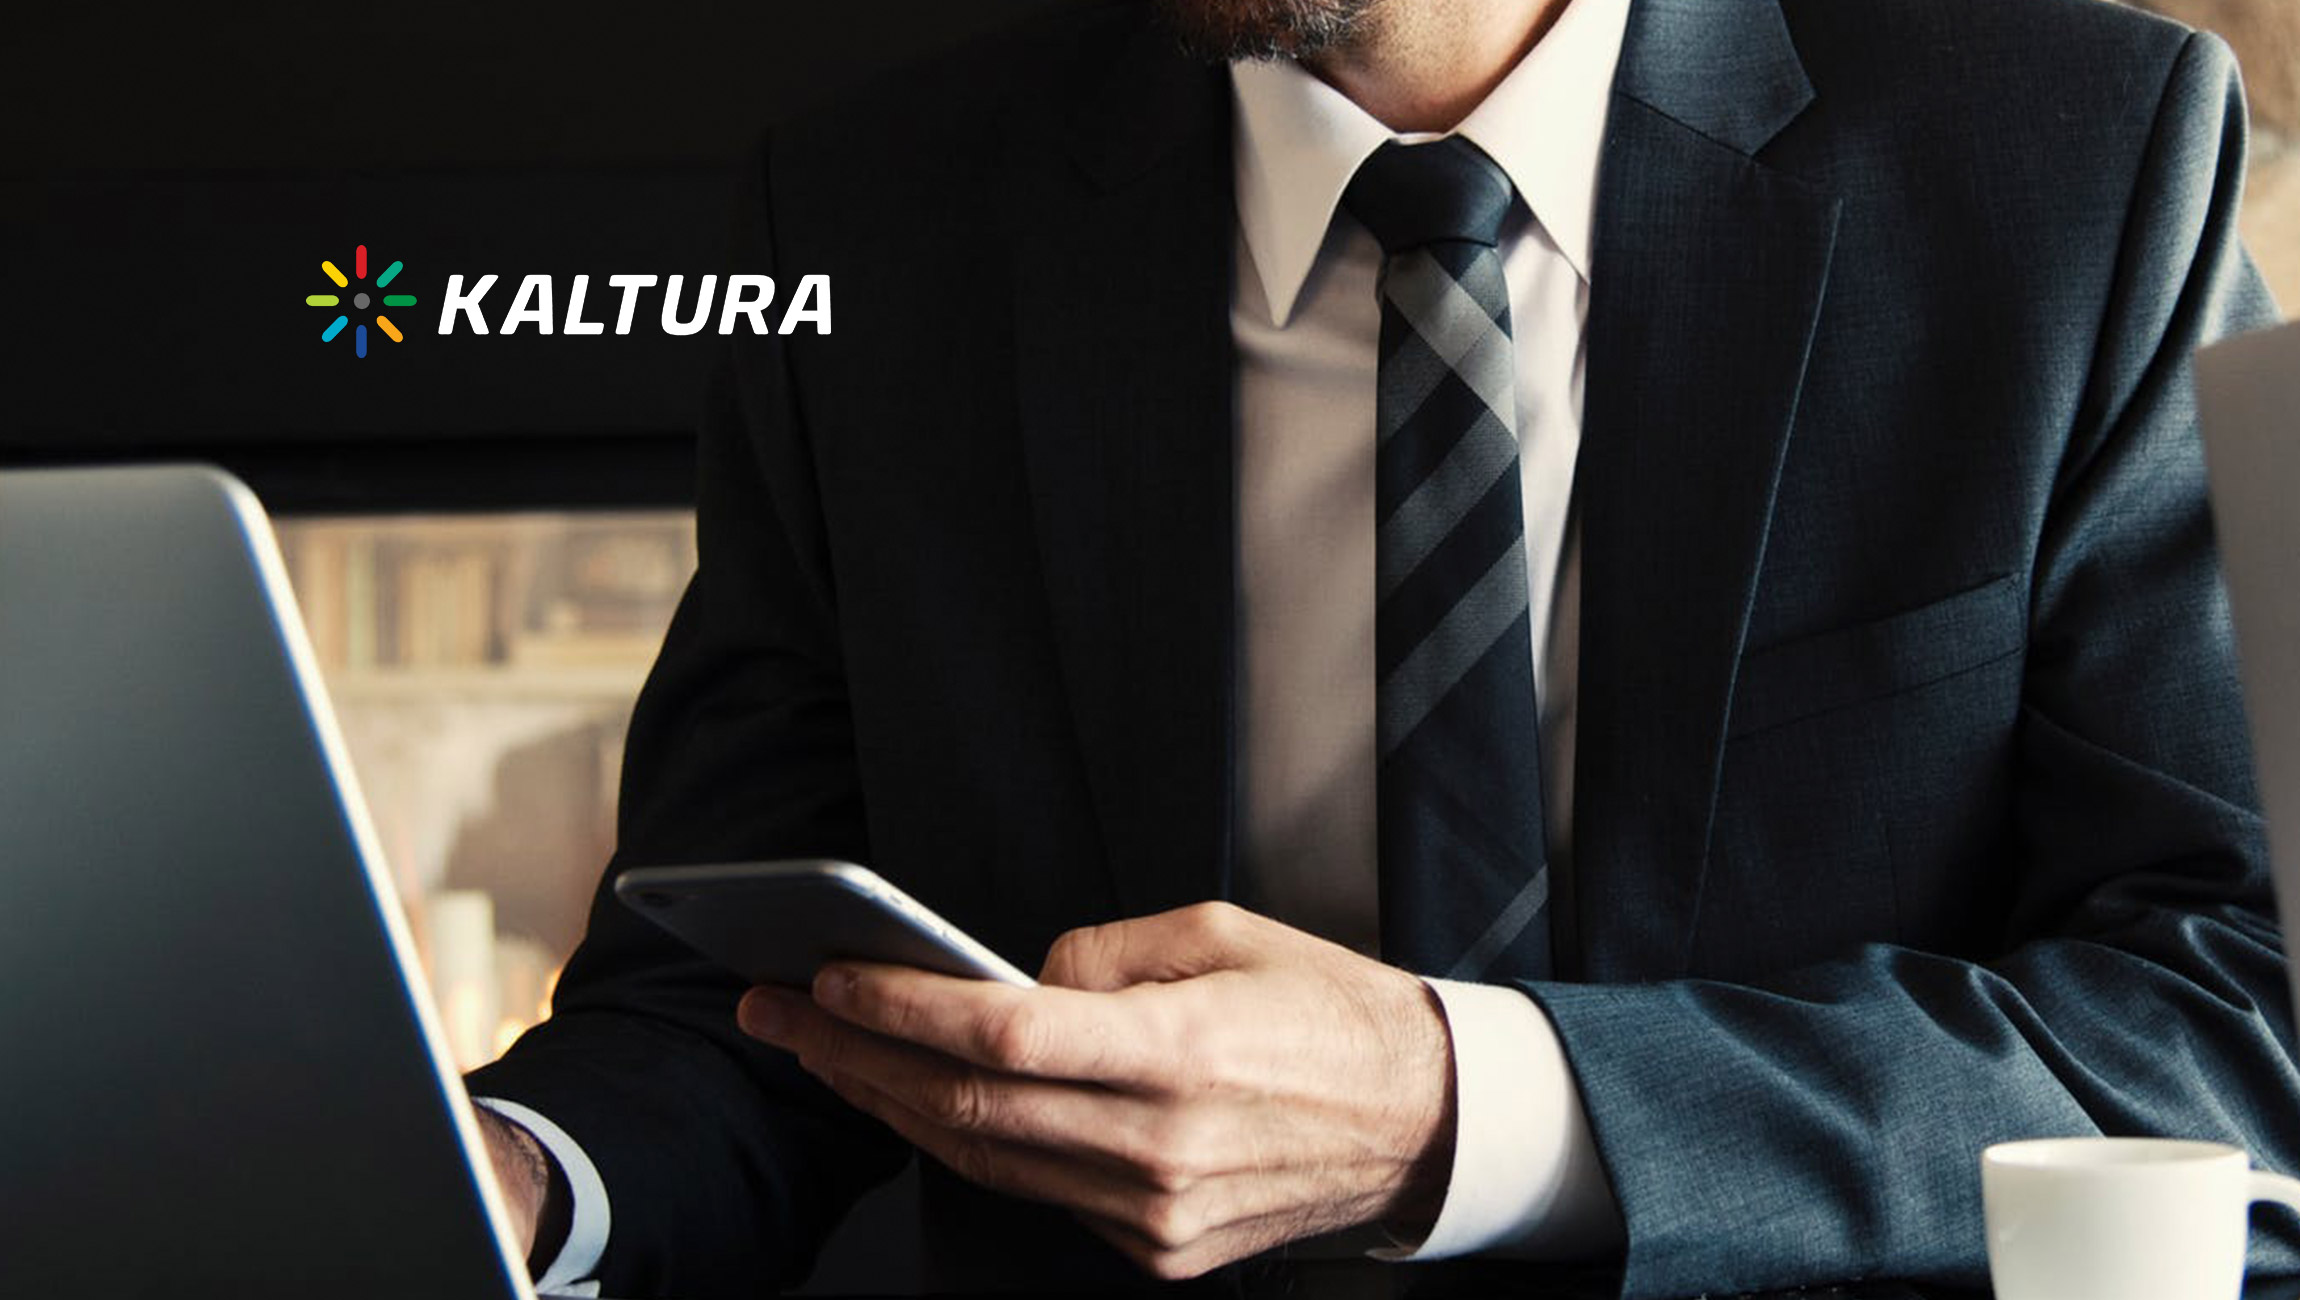 Kaltura Launches New Integration with Zoom Video Communications